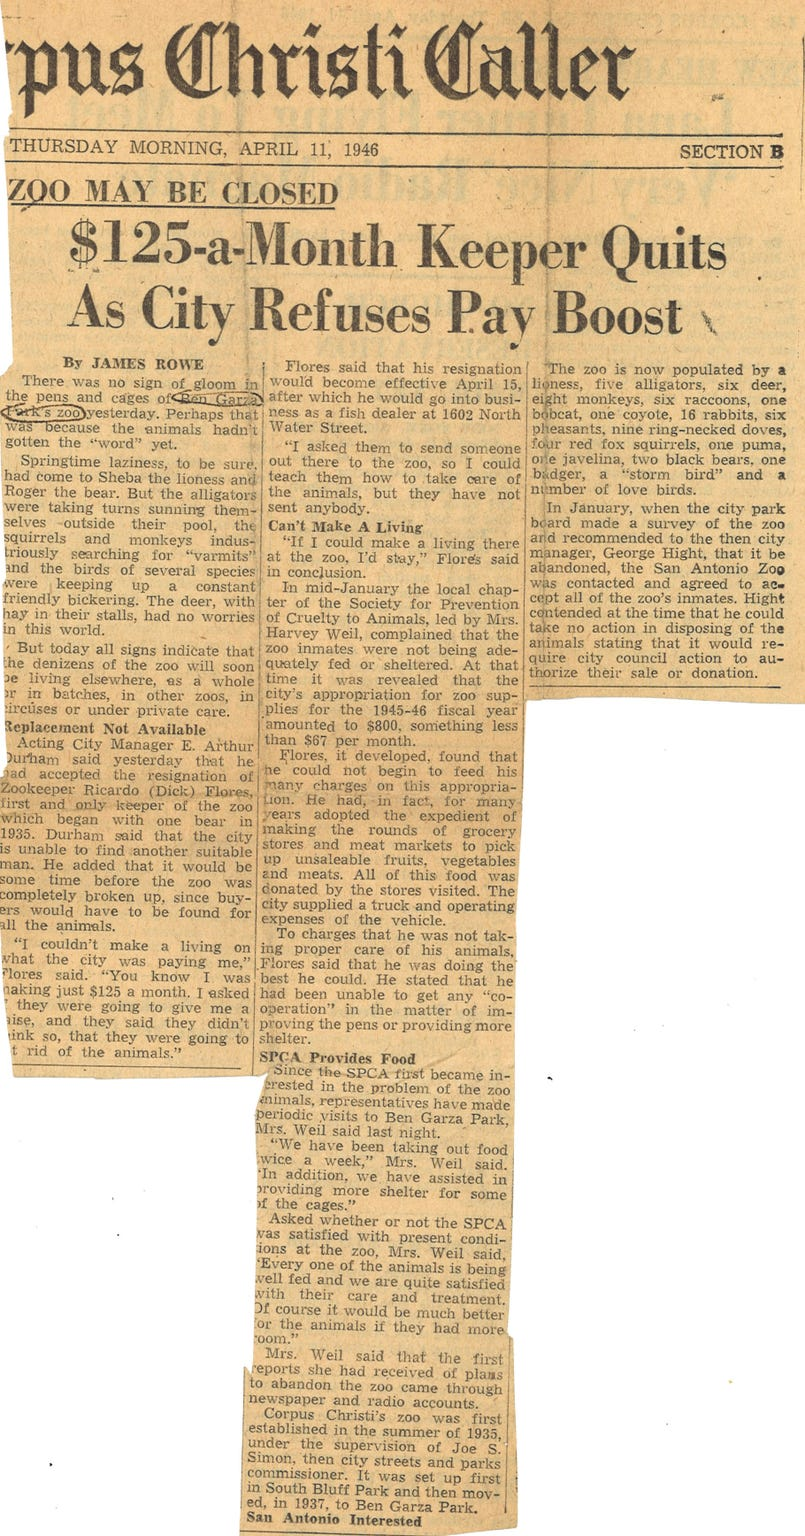 The Corpus Christi Caller reported on April 11, 1946 that the city refused to raise the pay of zookeeper Dick Flores. The city council abolished the zoo and the animals were sent to Brackenridge Park Zoo in San Antonio within the week.